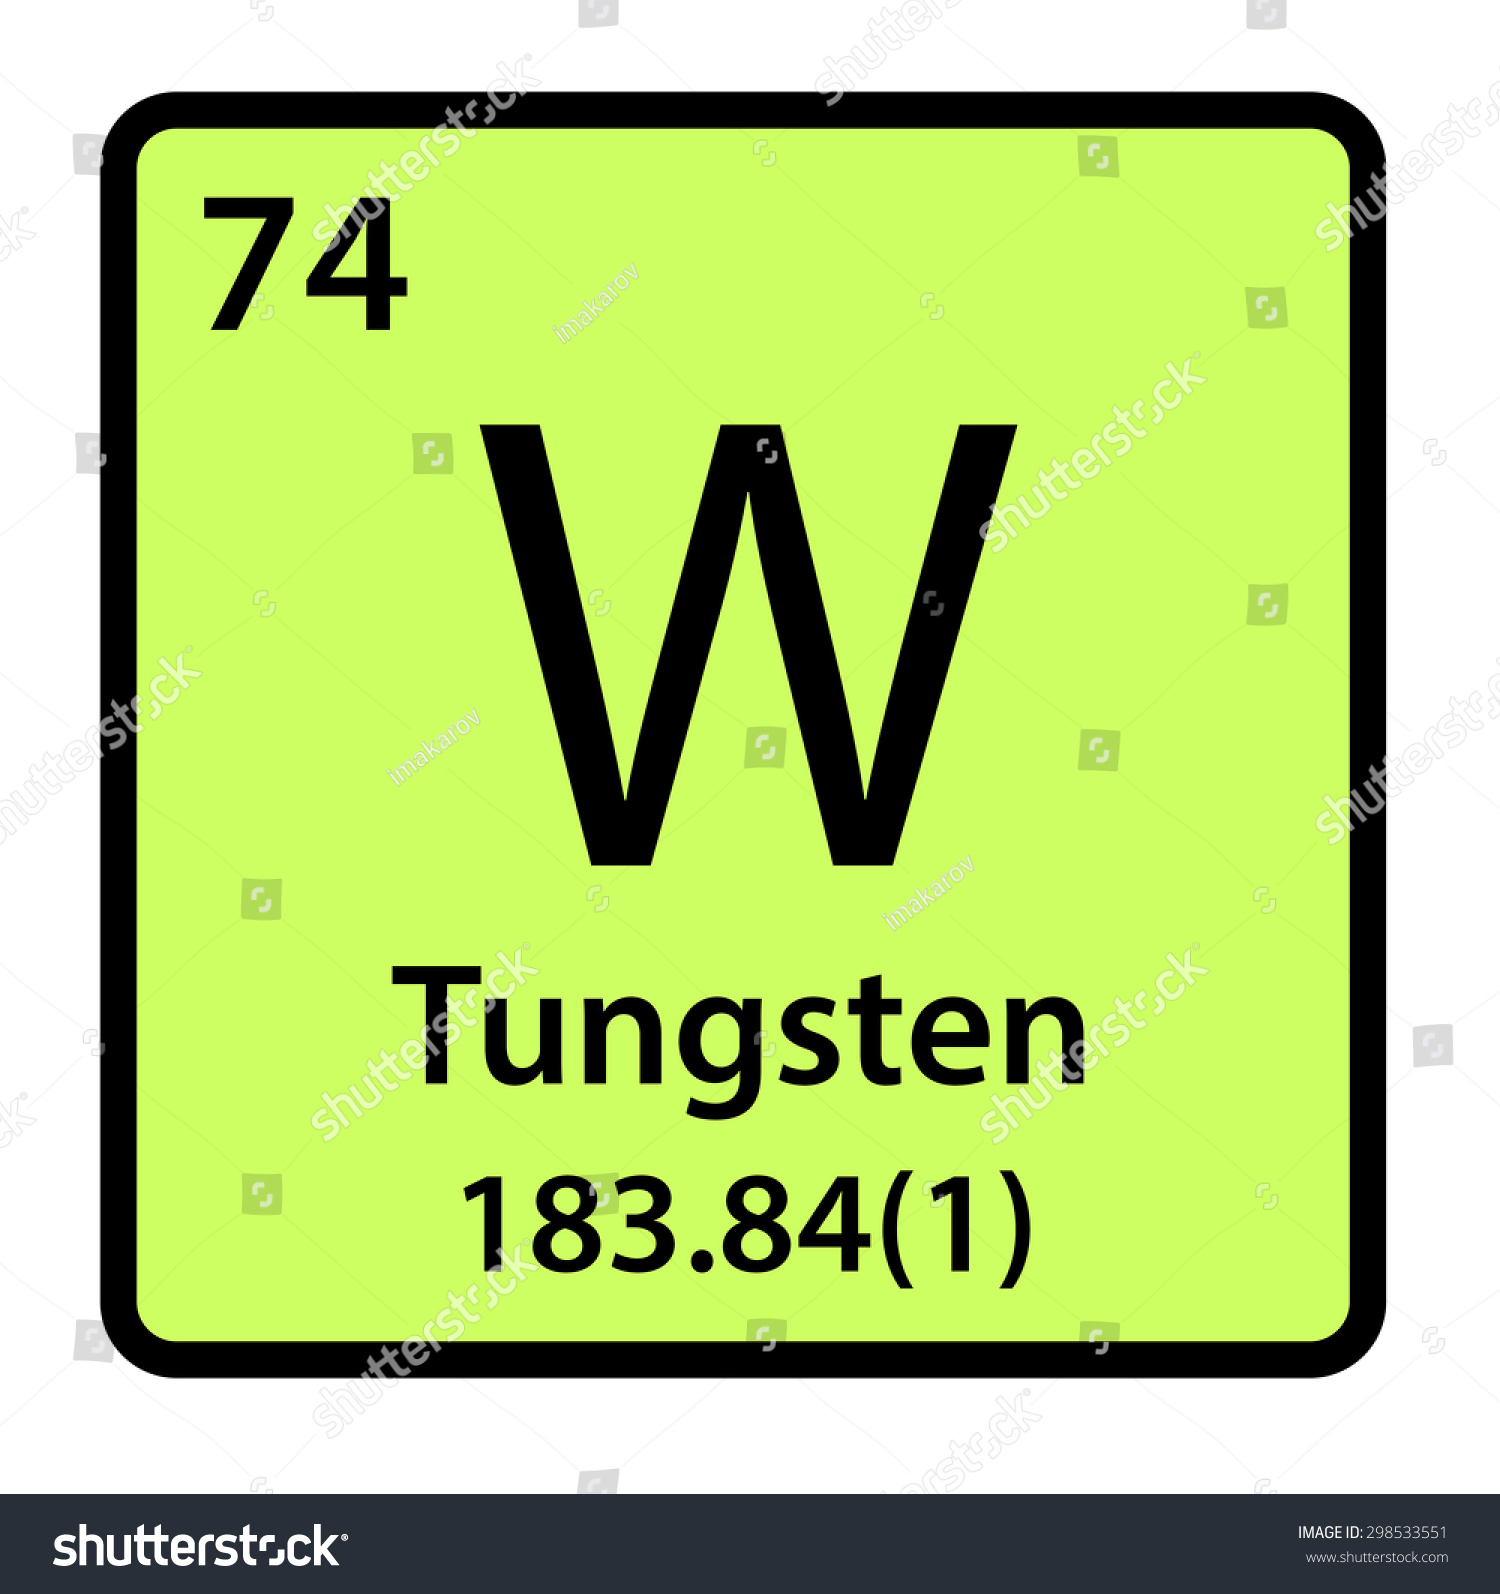 Element tungsten periodic table stock illustration 298533551 element tungsten of the periodic table gamestrikefo Gallery